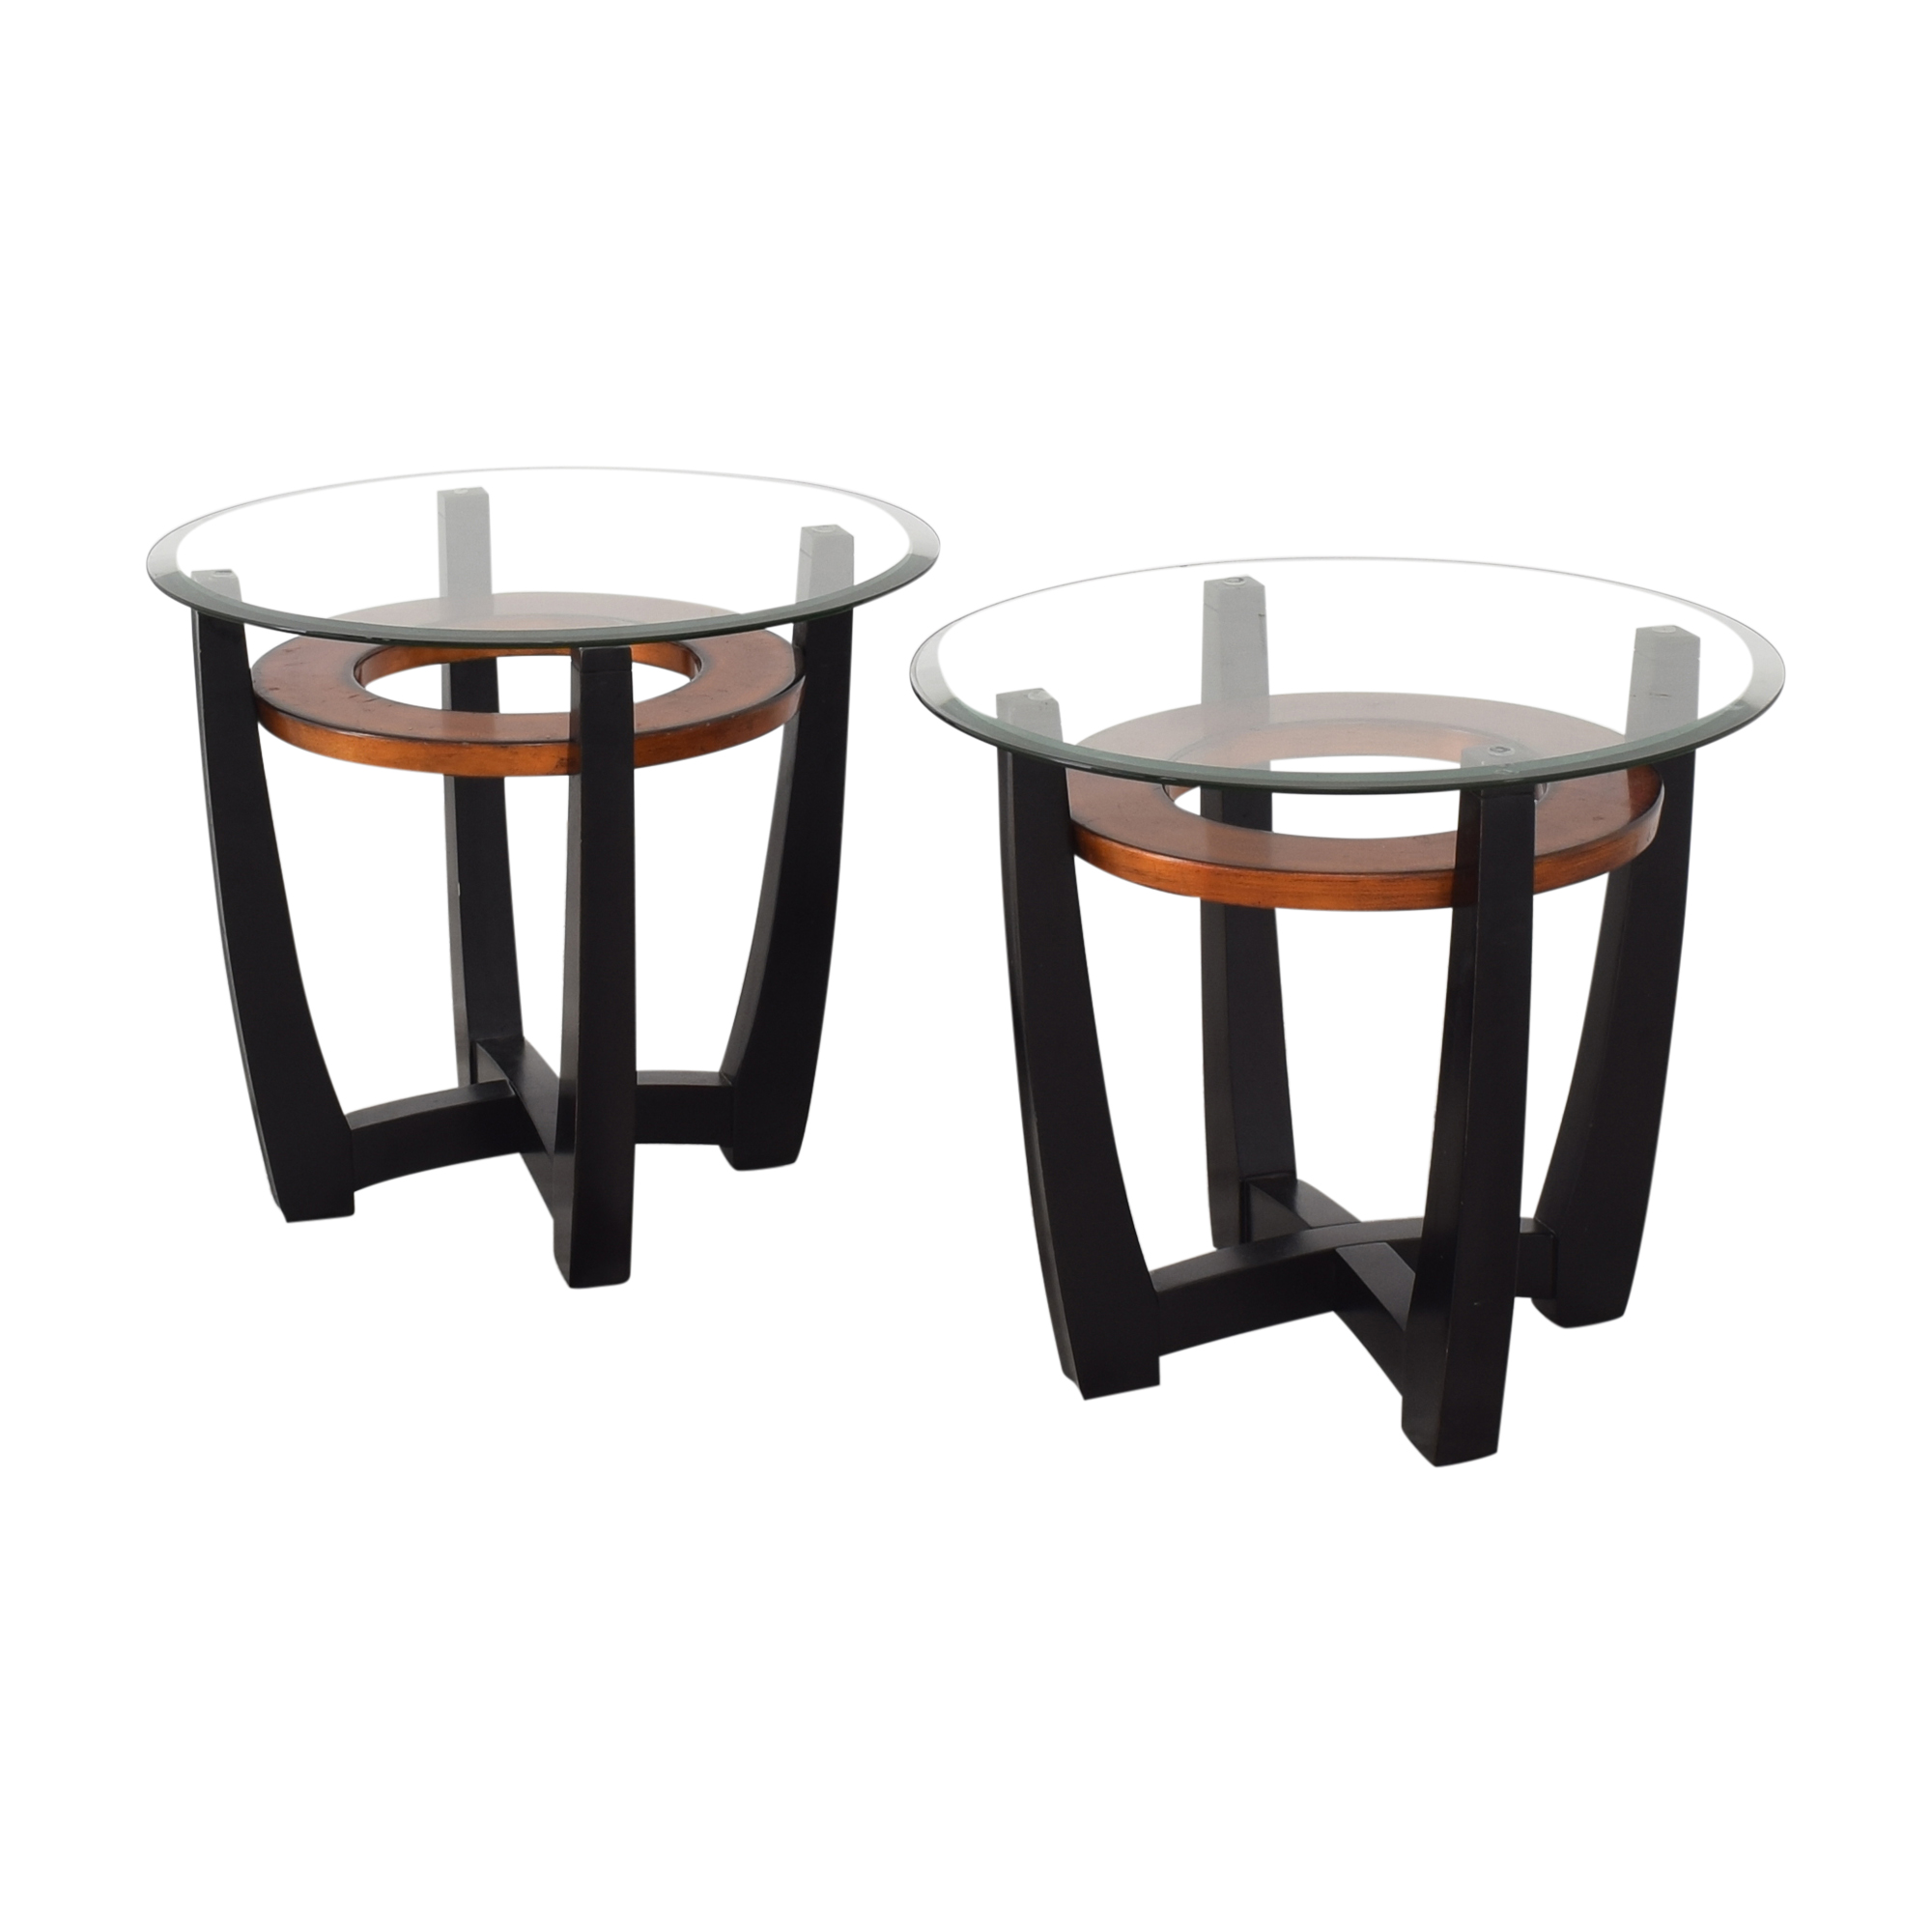 Macy's Macy's Elation Round End Tables ct